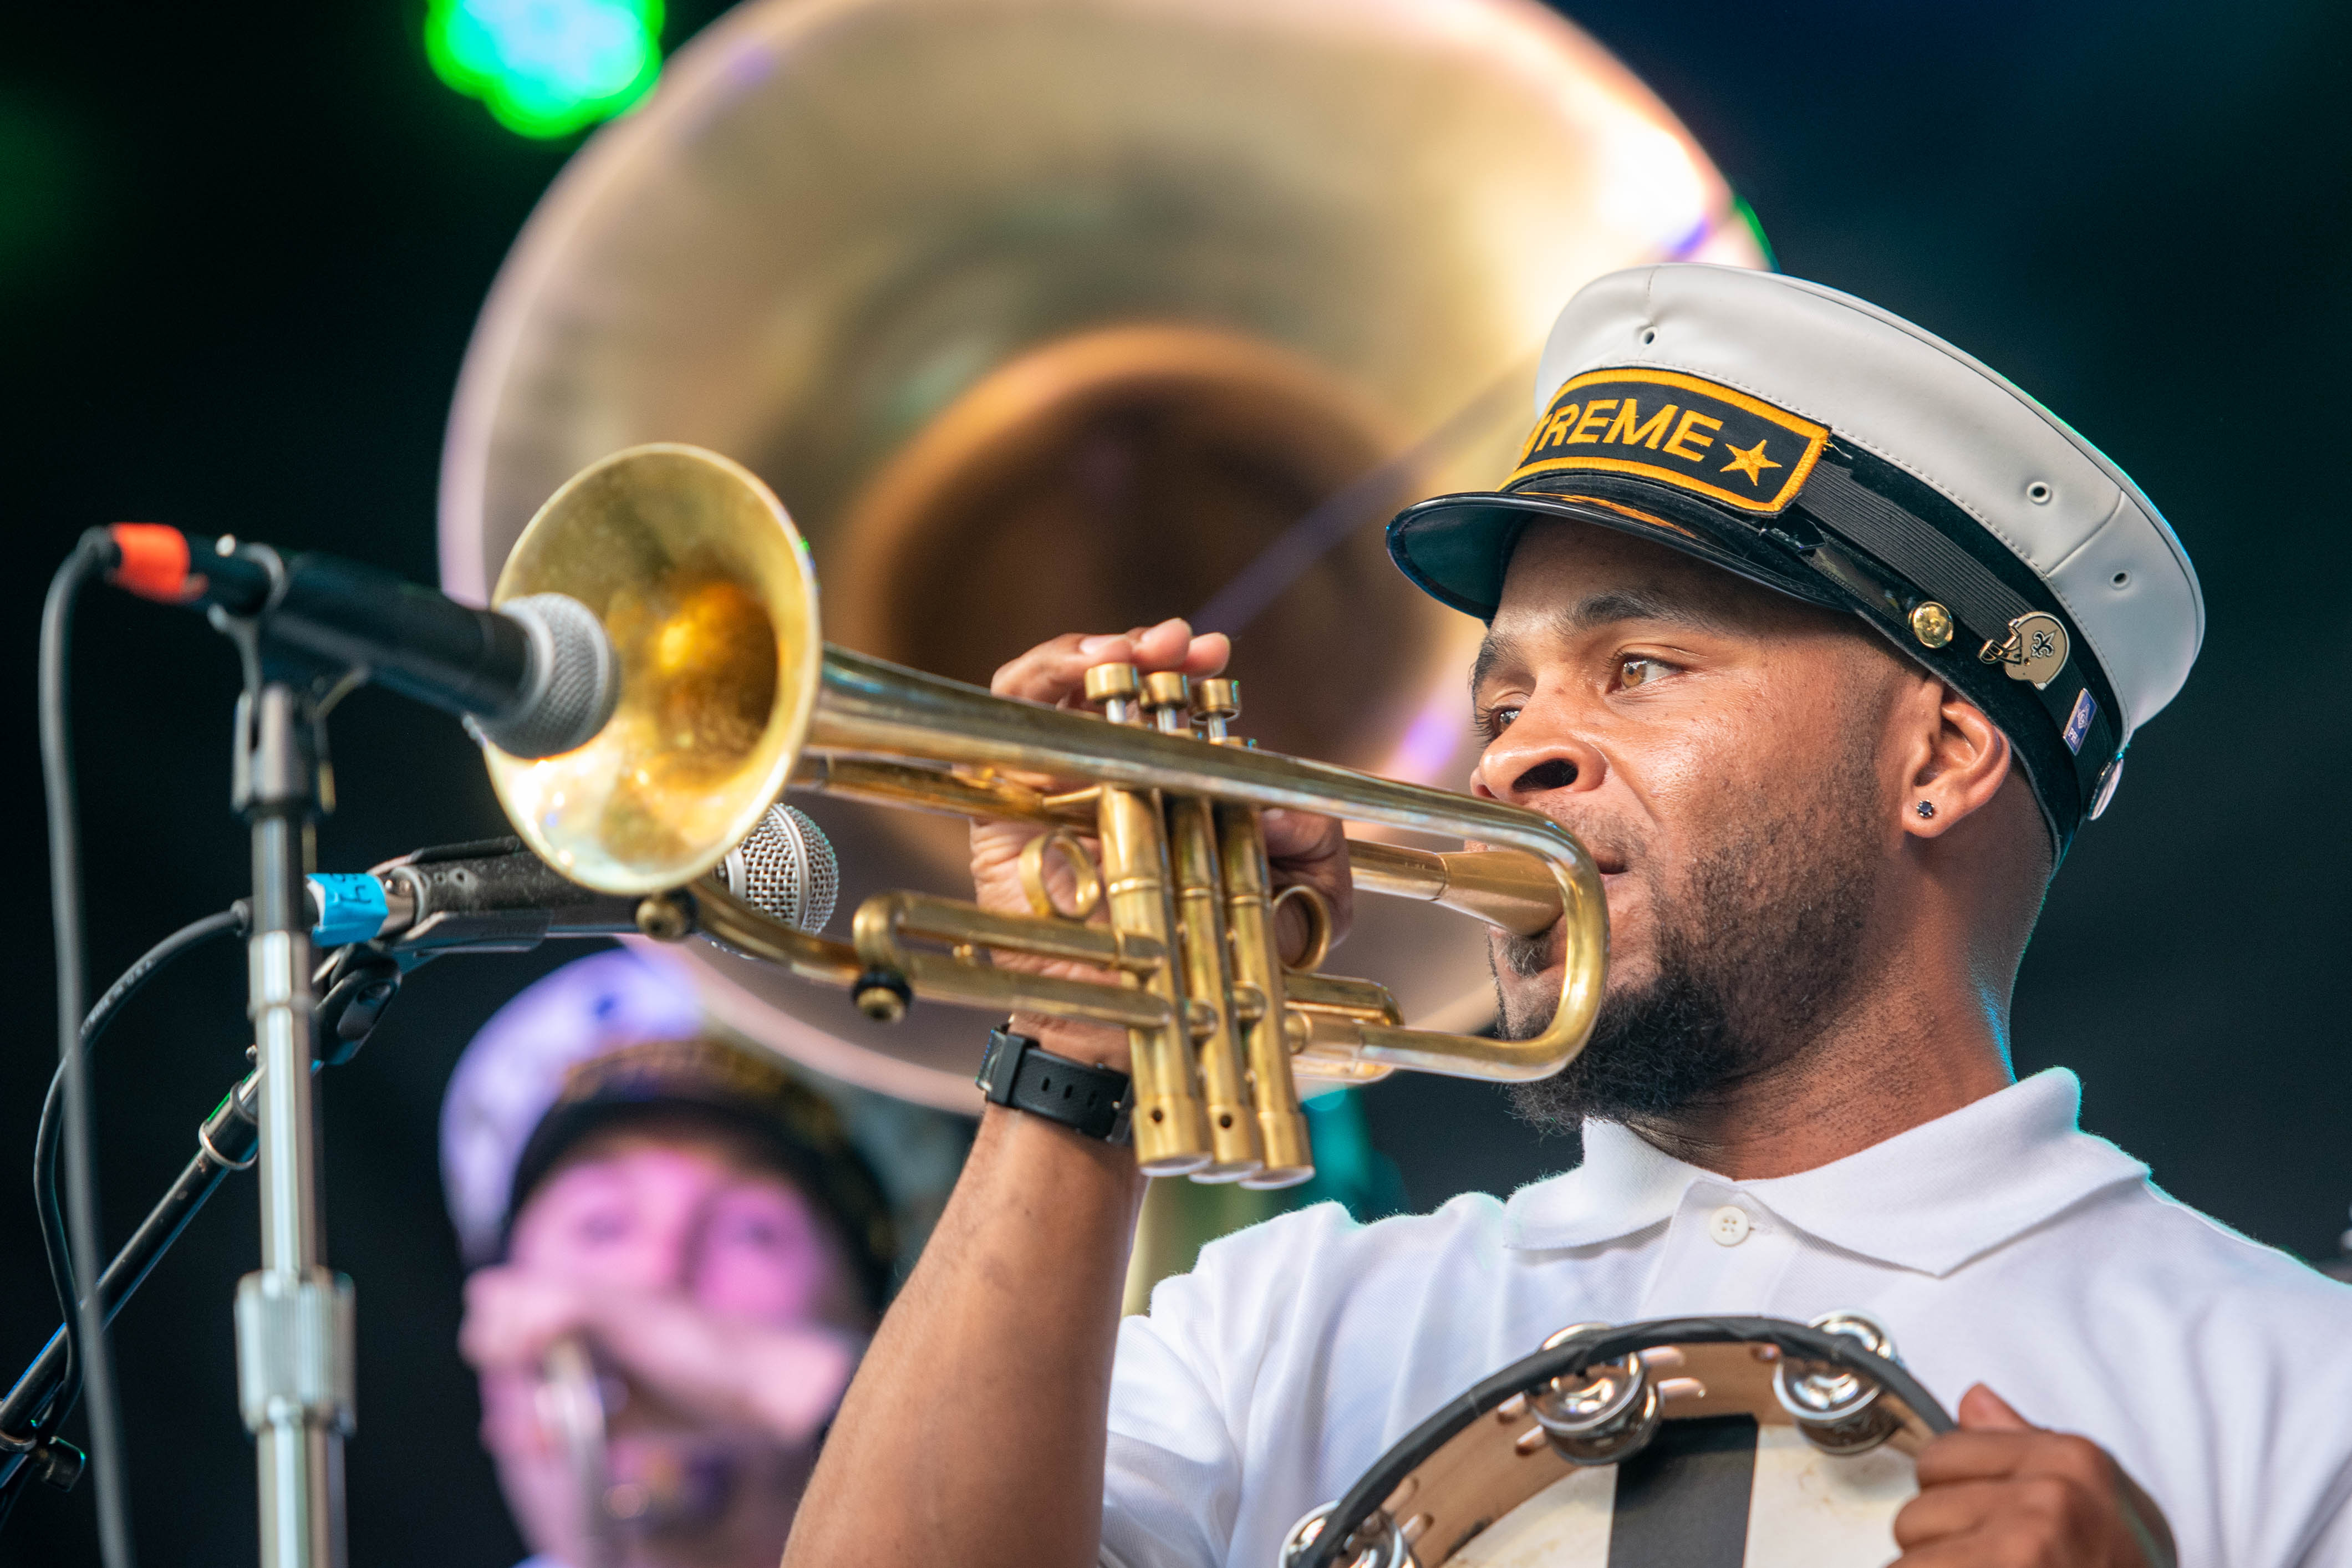 Tremé Brass Band (New Orleans brass band)